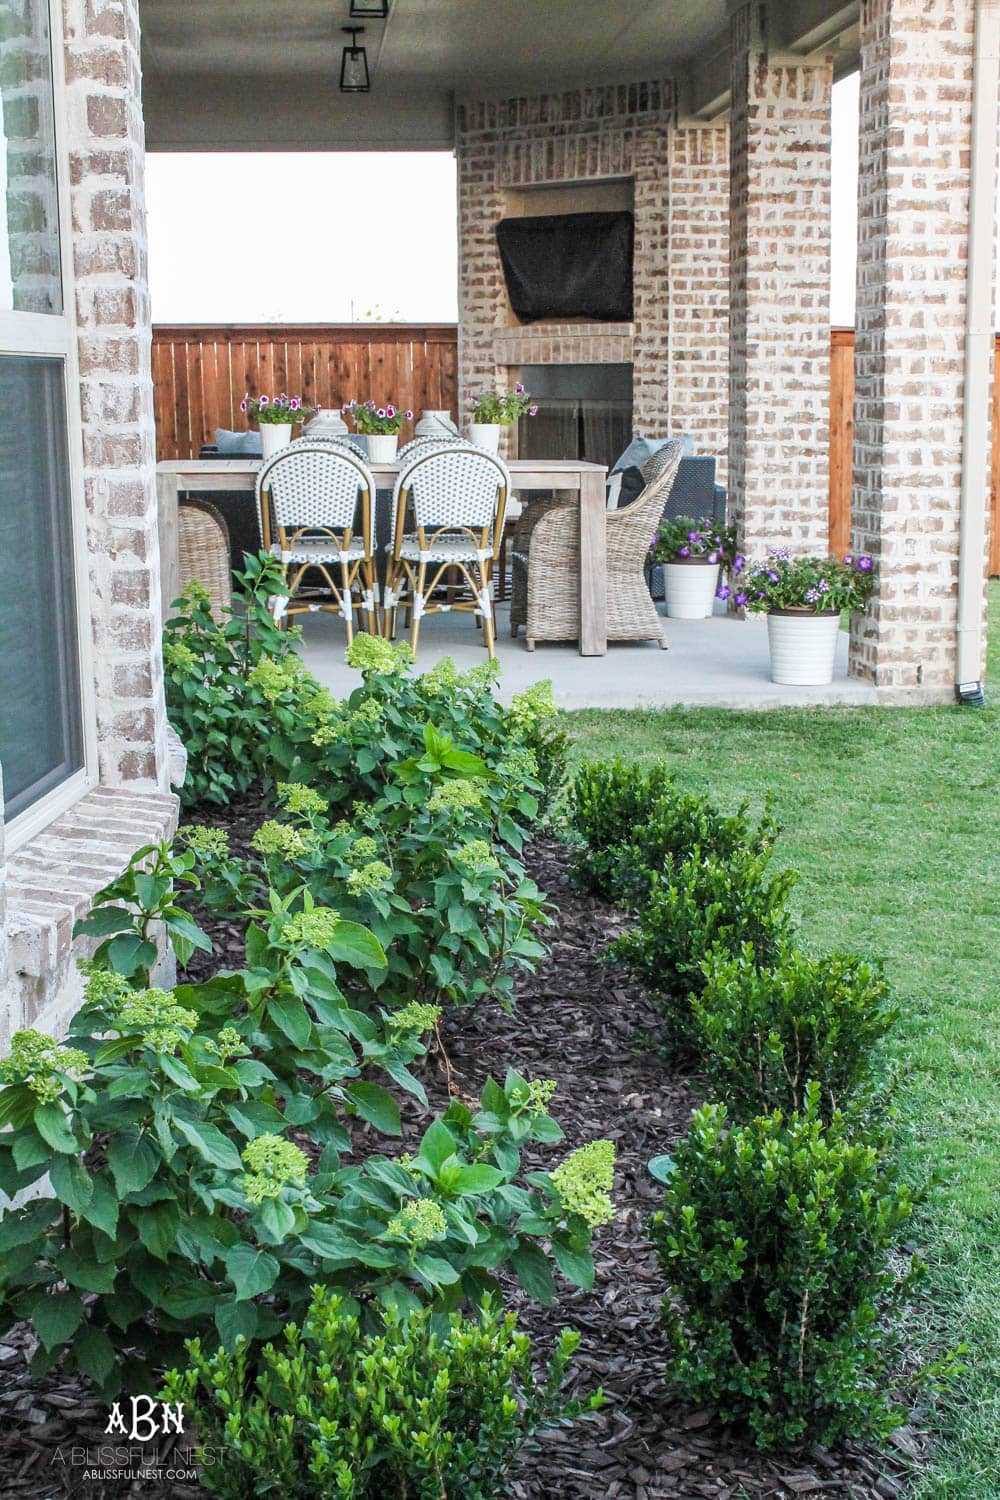 Small Backyard Makeover Before and After - Landscaping Ideas on Small Backyard Renovation Ideas id=40876